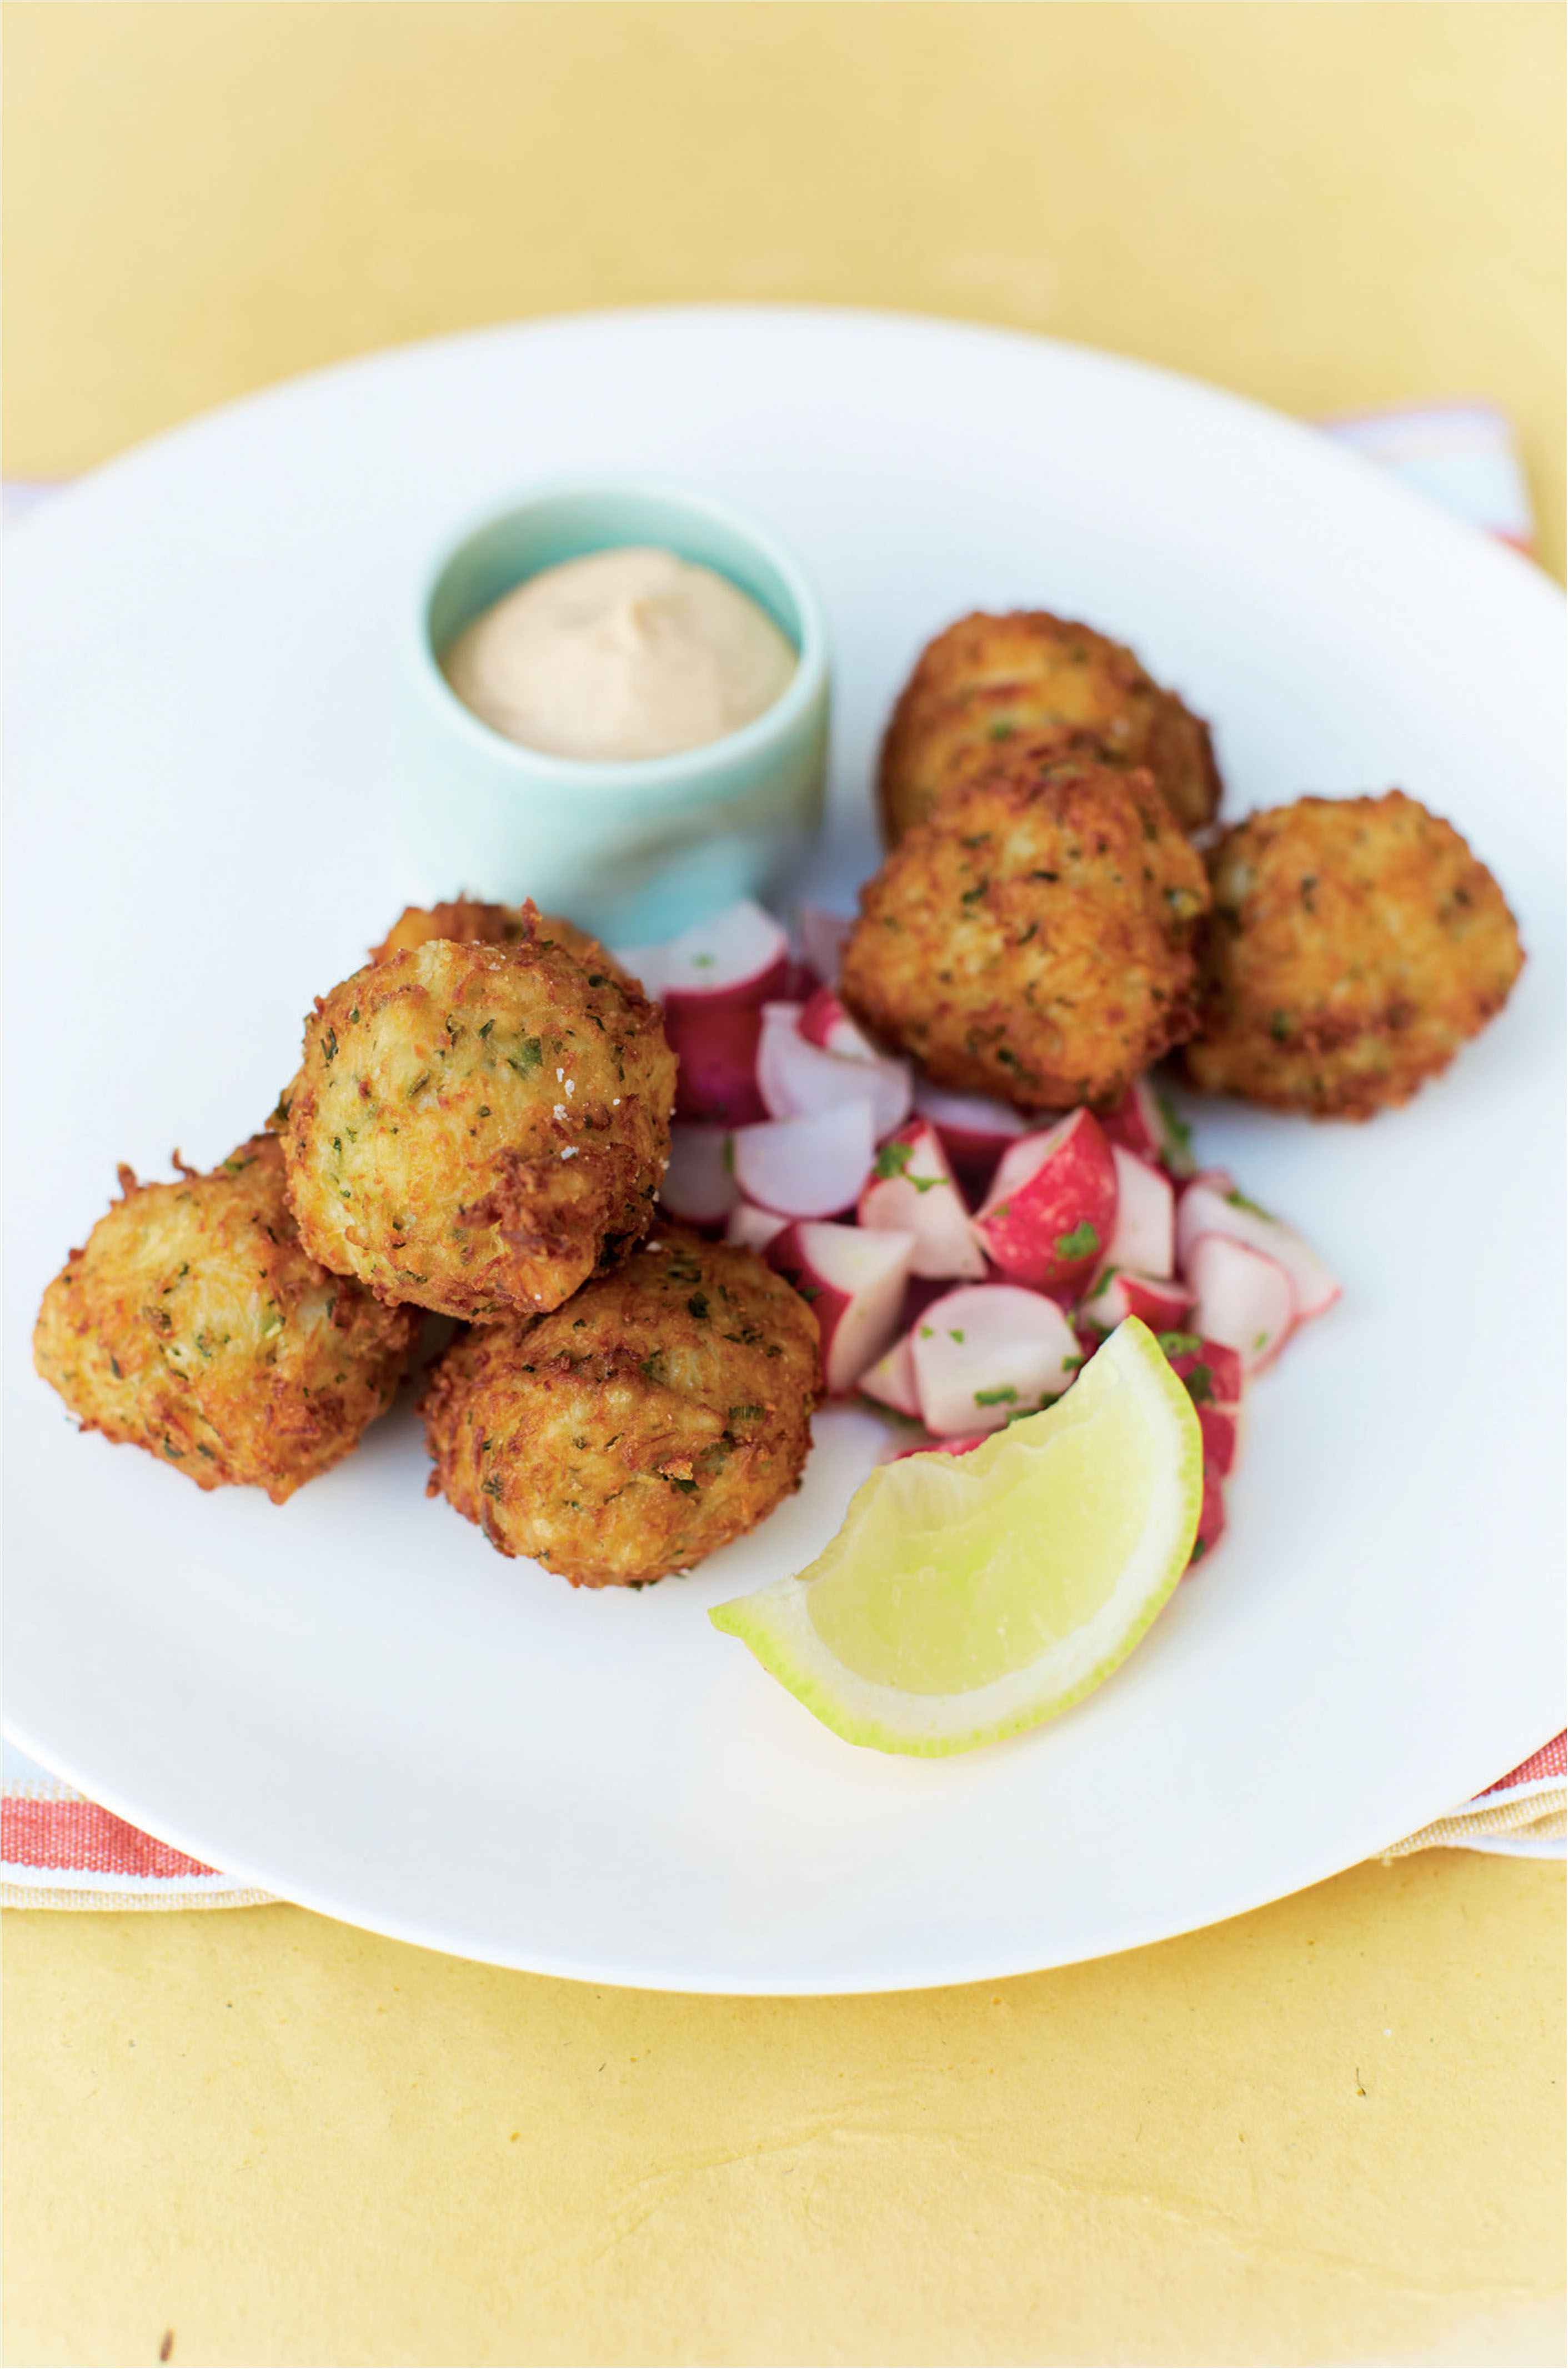 Crab cakes with crab custard and radish salad